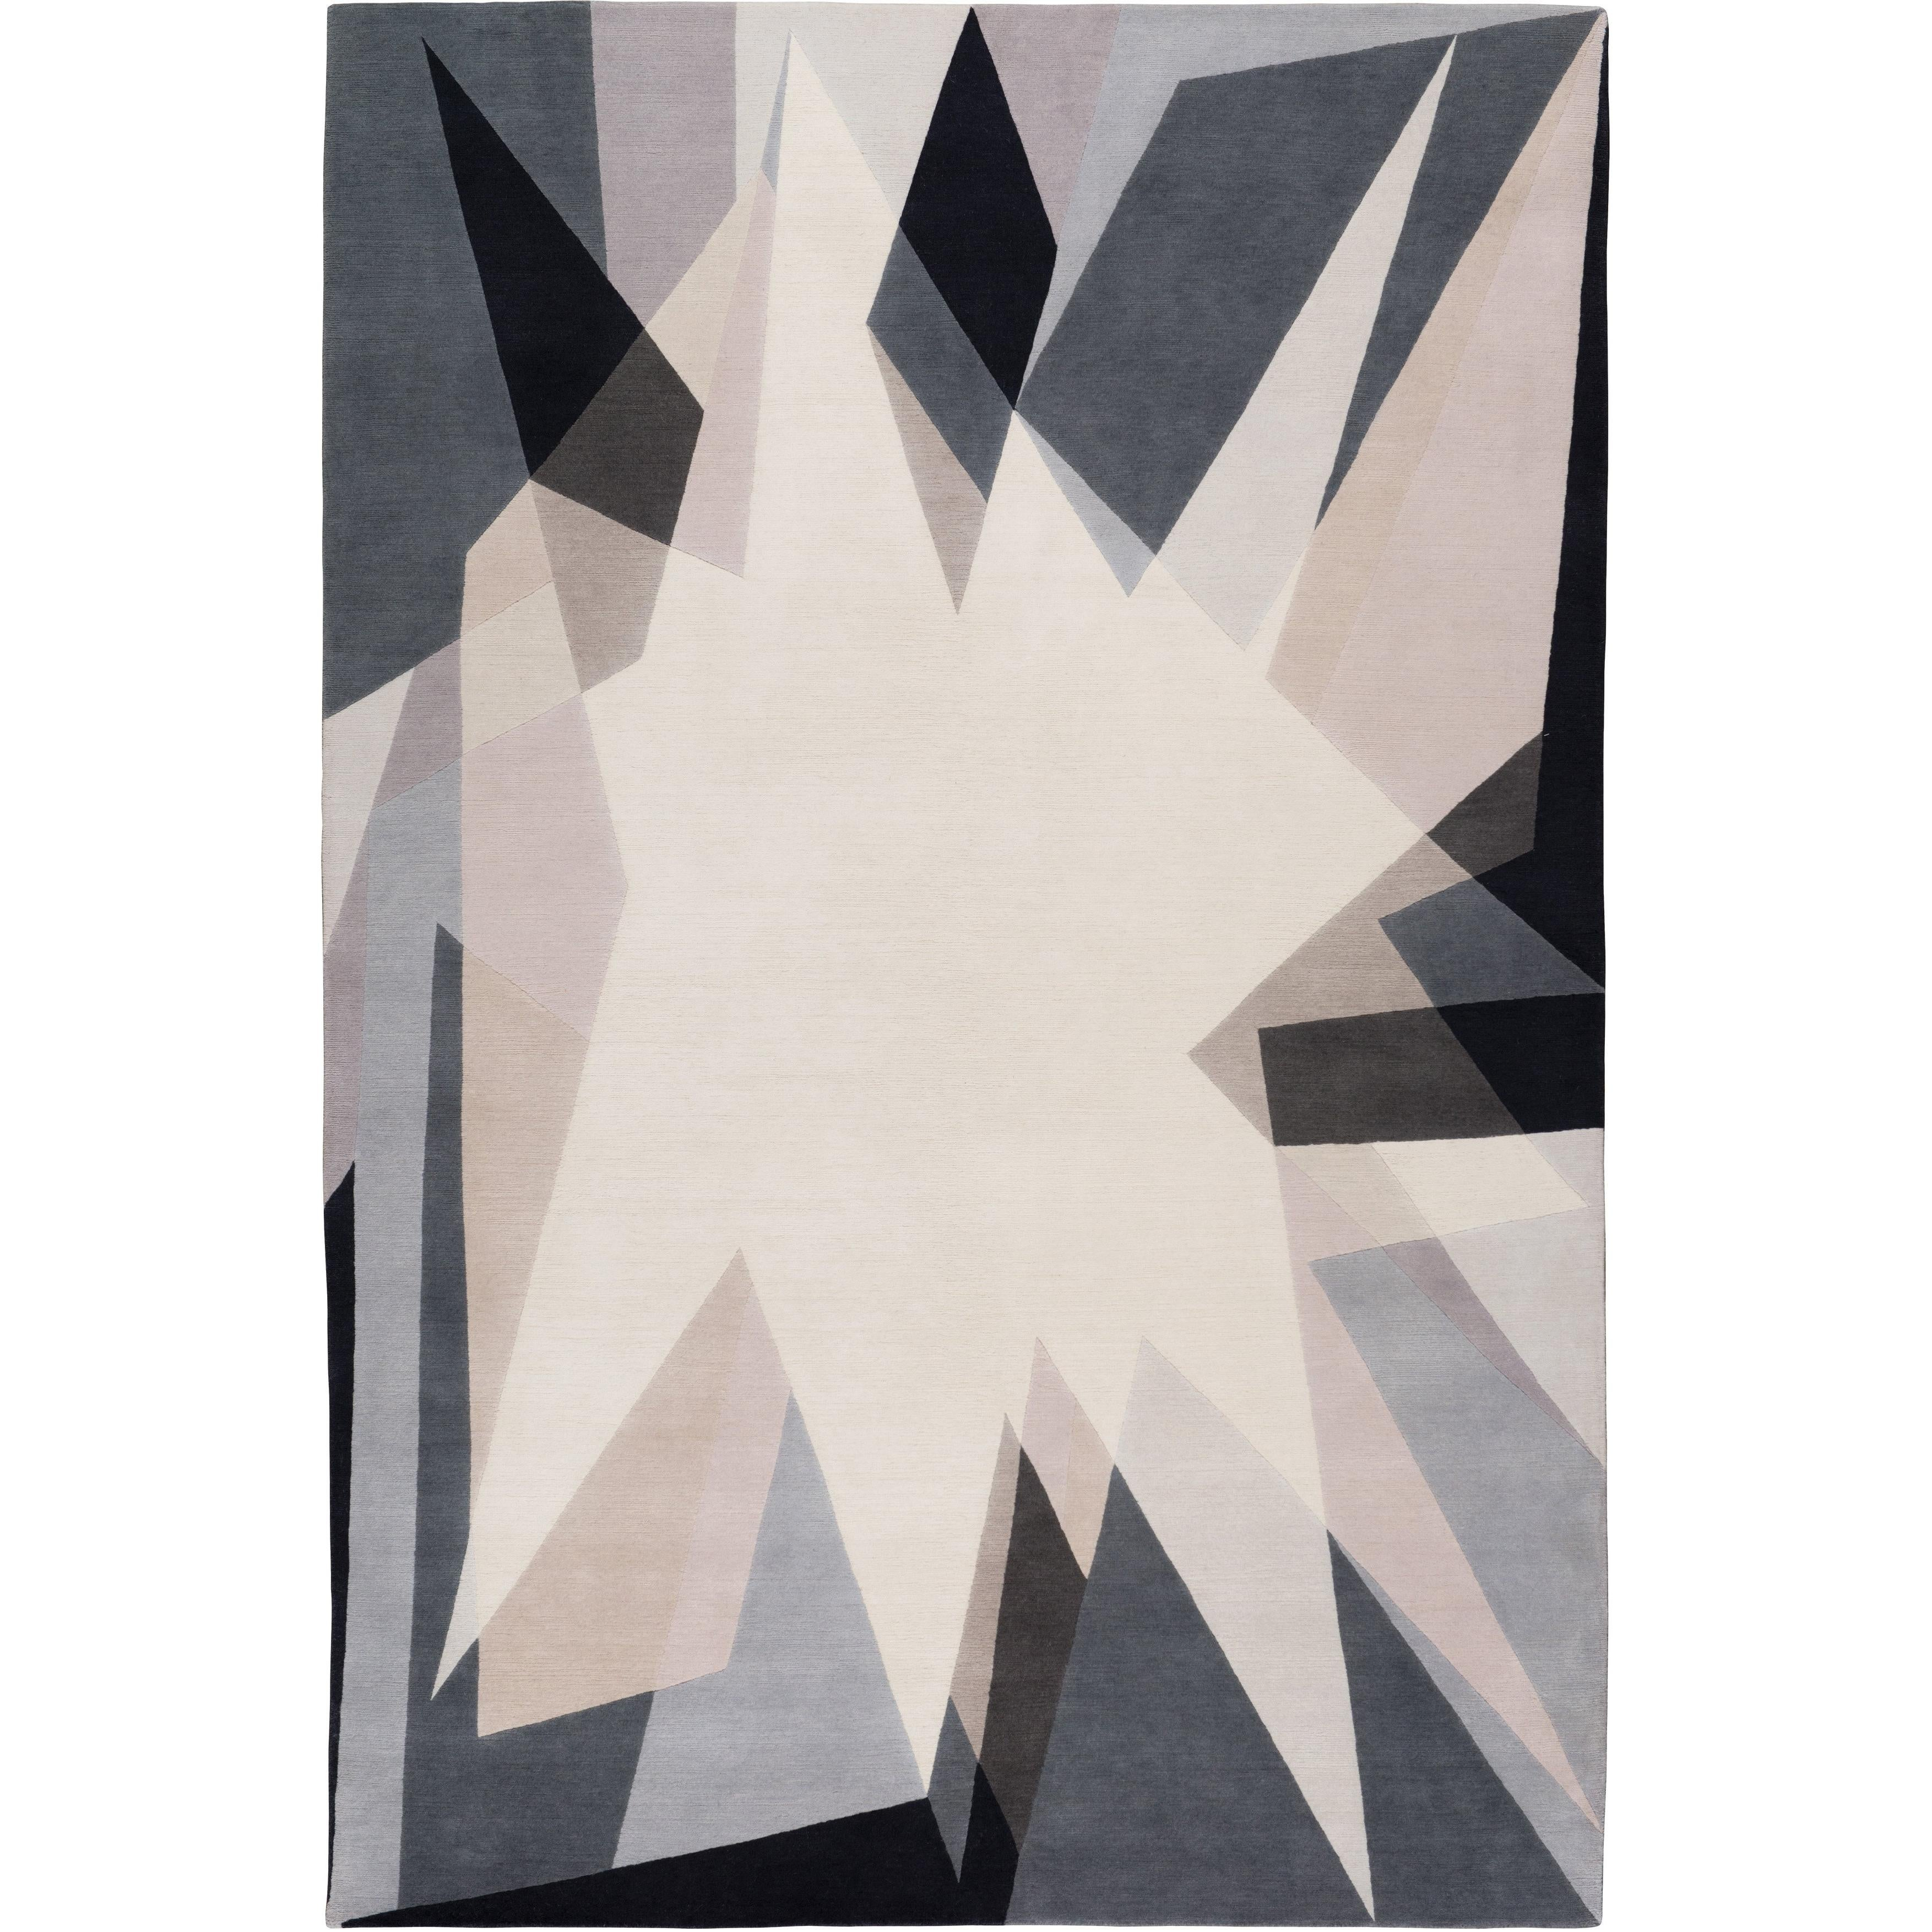 Alma Hand-Knotted 10x8  Rug in Wool by Jaime Gili